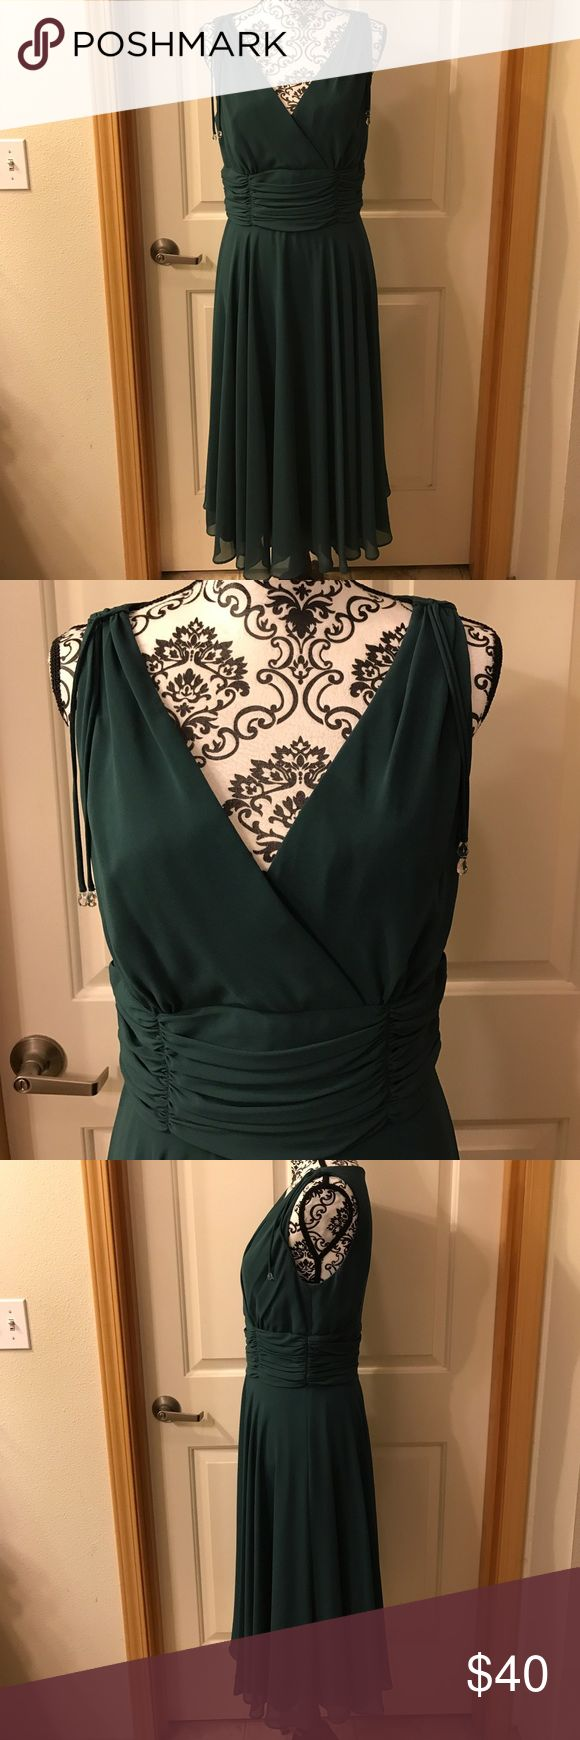 GORGEOUS Emerald Green Cocktail Dress EUC (worn 1 time!) sleeveless emerald green evening dress. Purchased at Nordstrom. Flattering ruched waist and flowy skirt. Patra Dresses